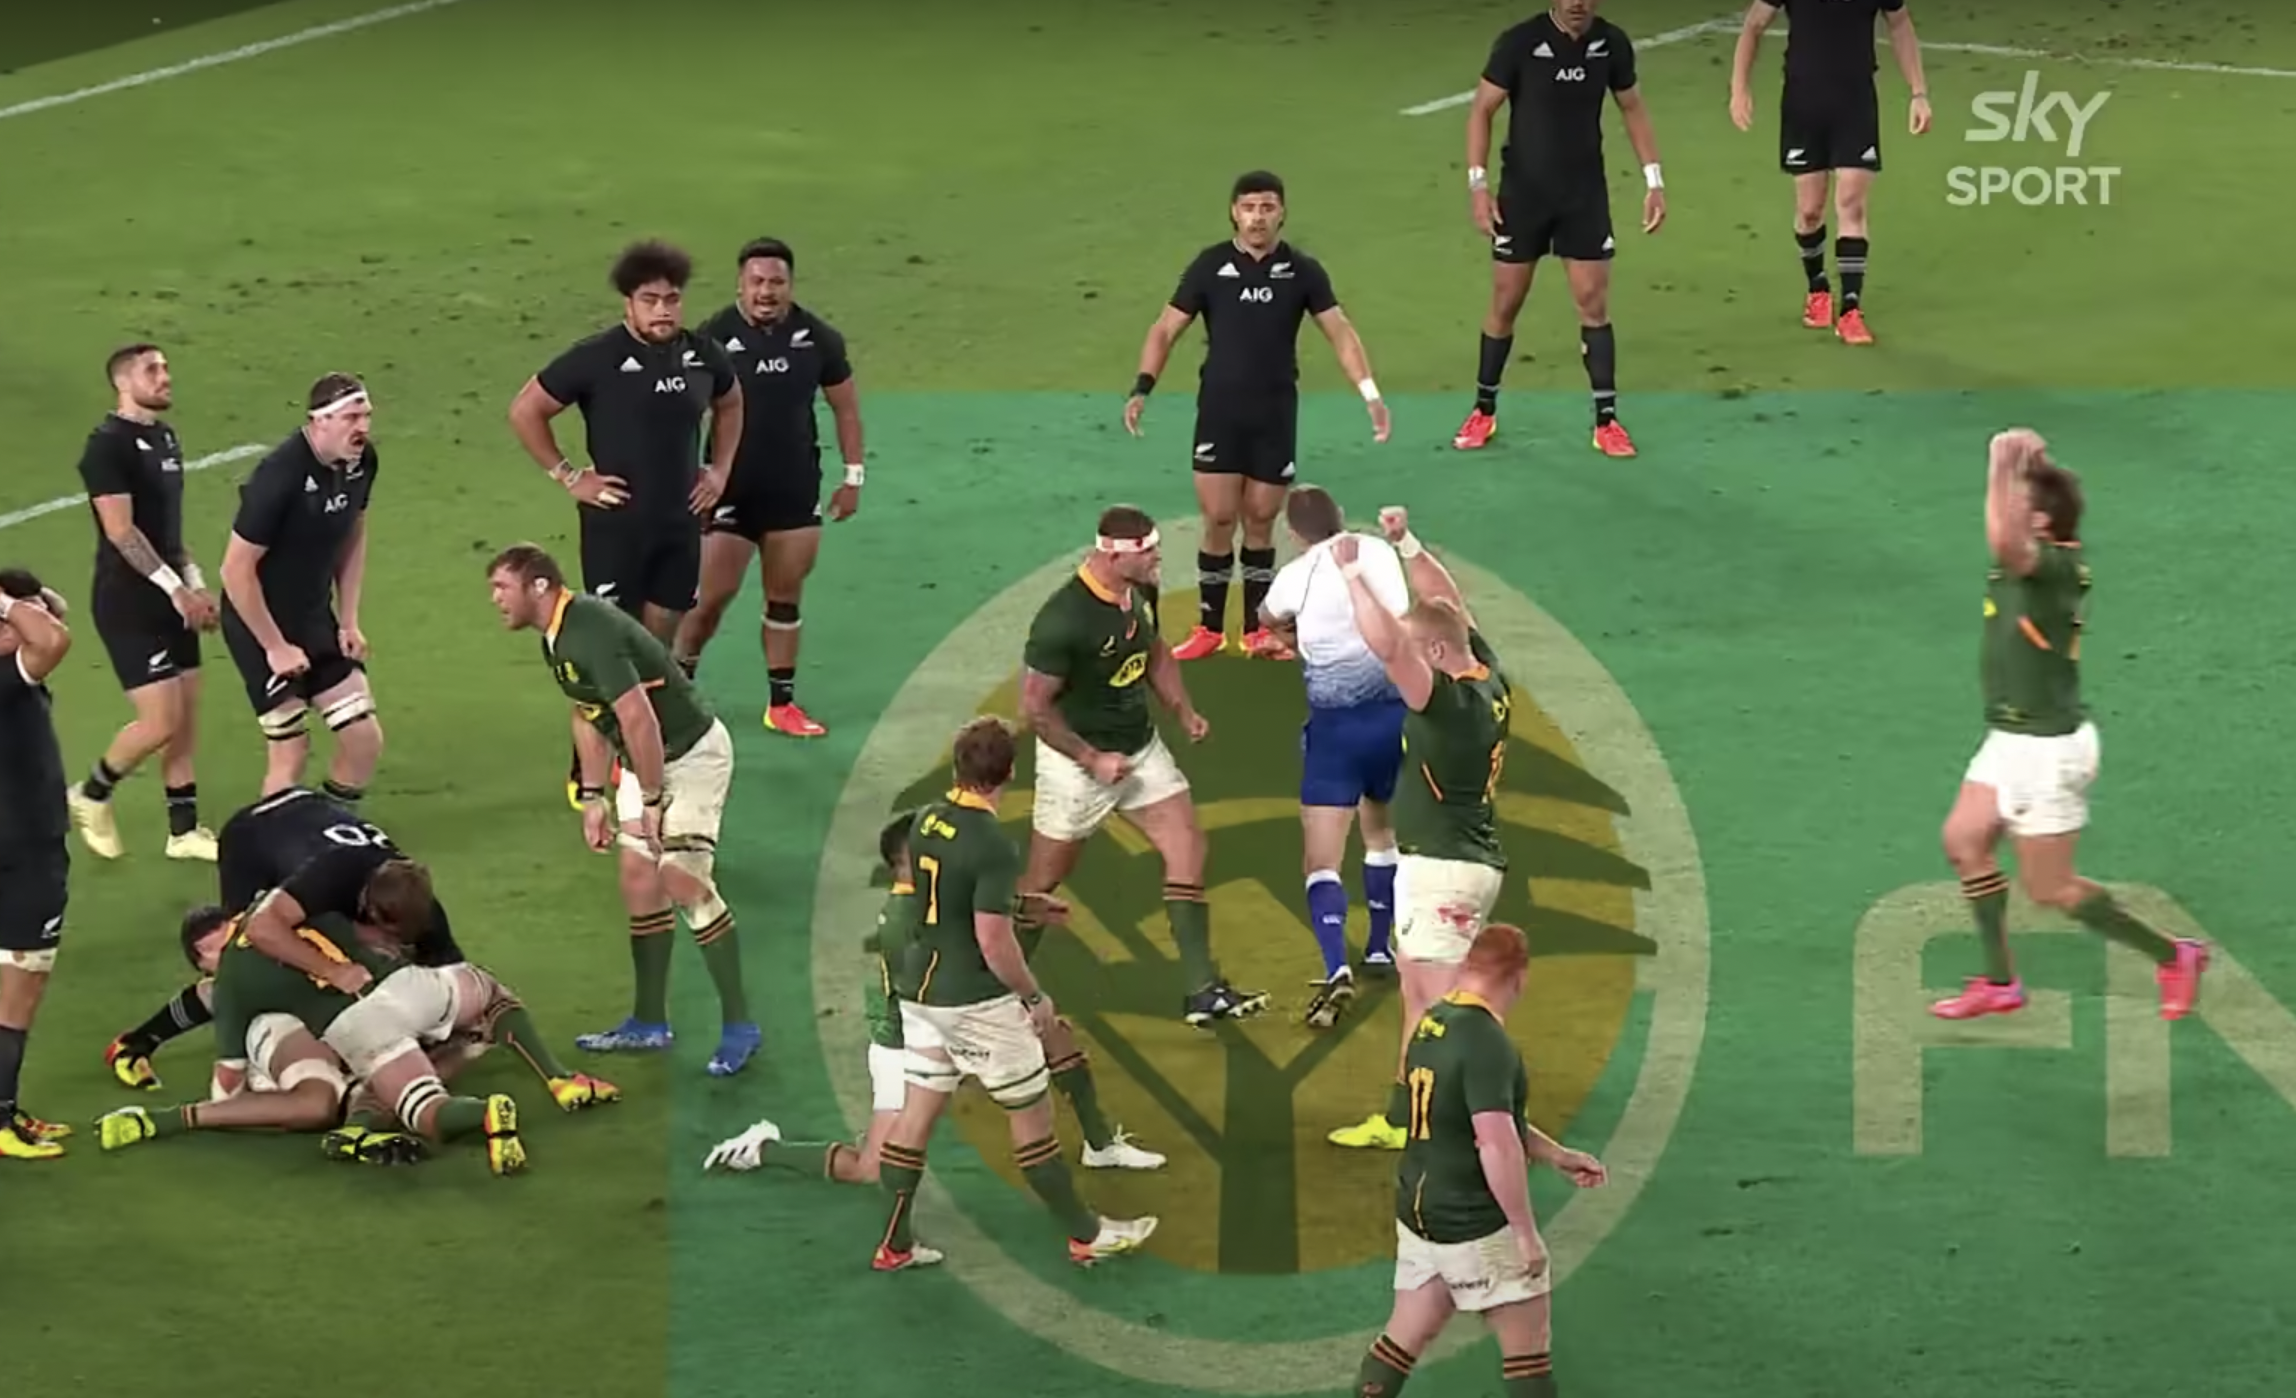 Mallett on what will take the Springboks to the next level